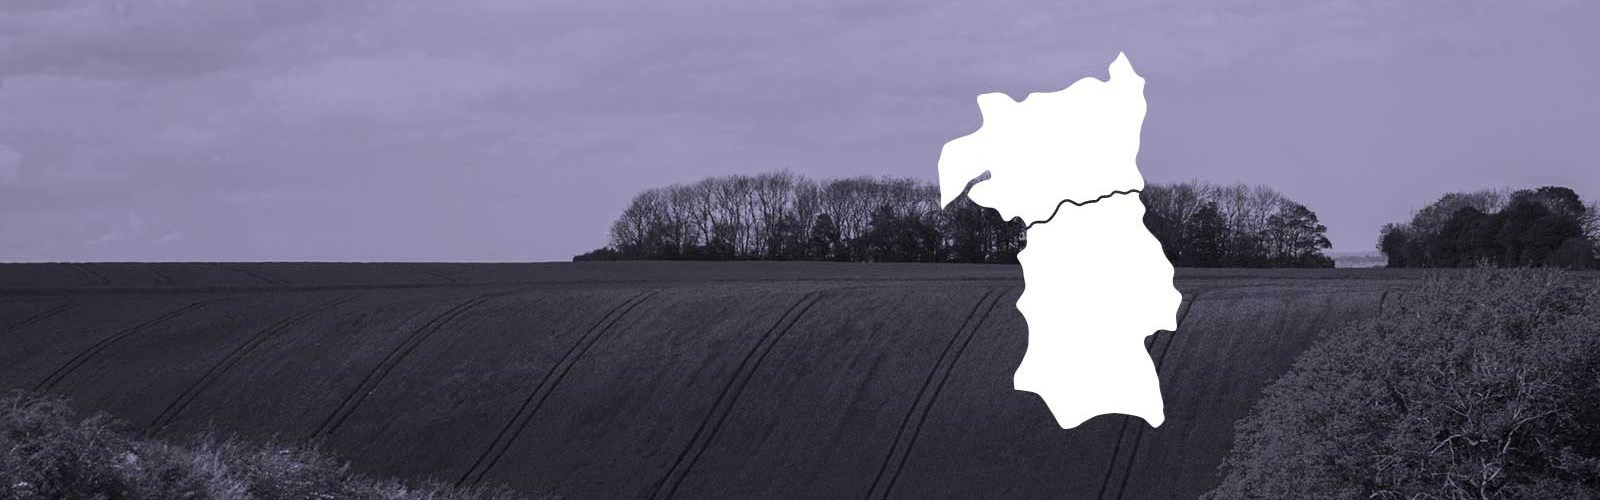 Photo of the countryside with a white map of West of England region